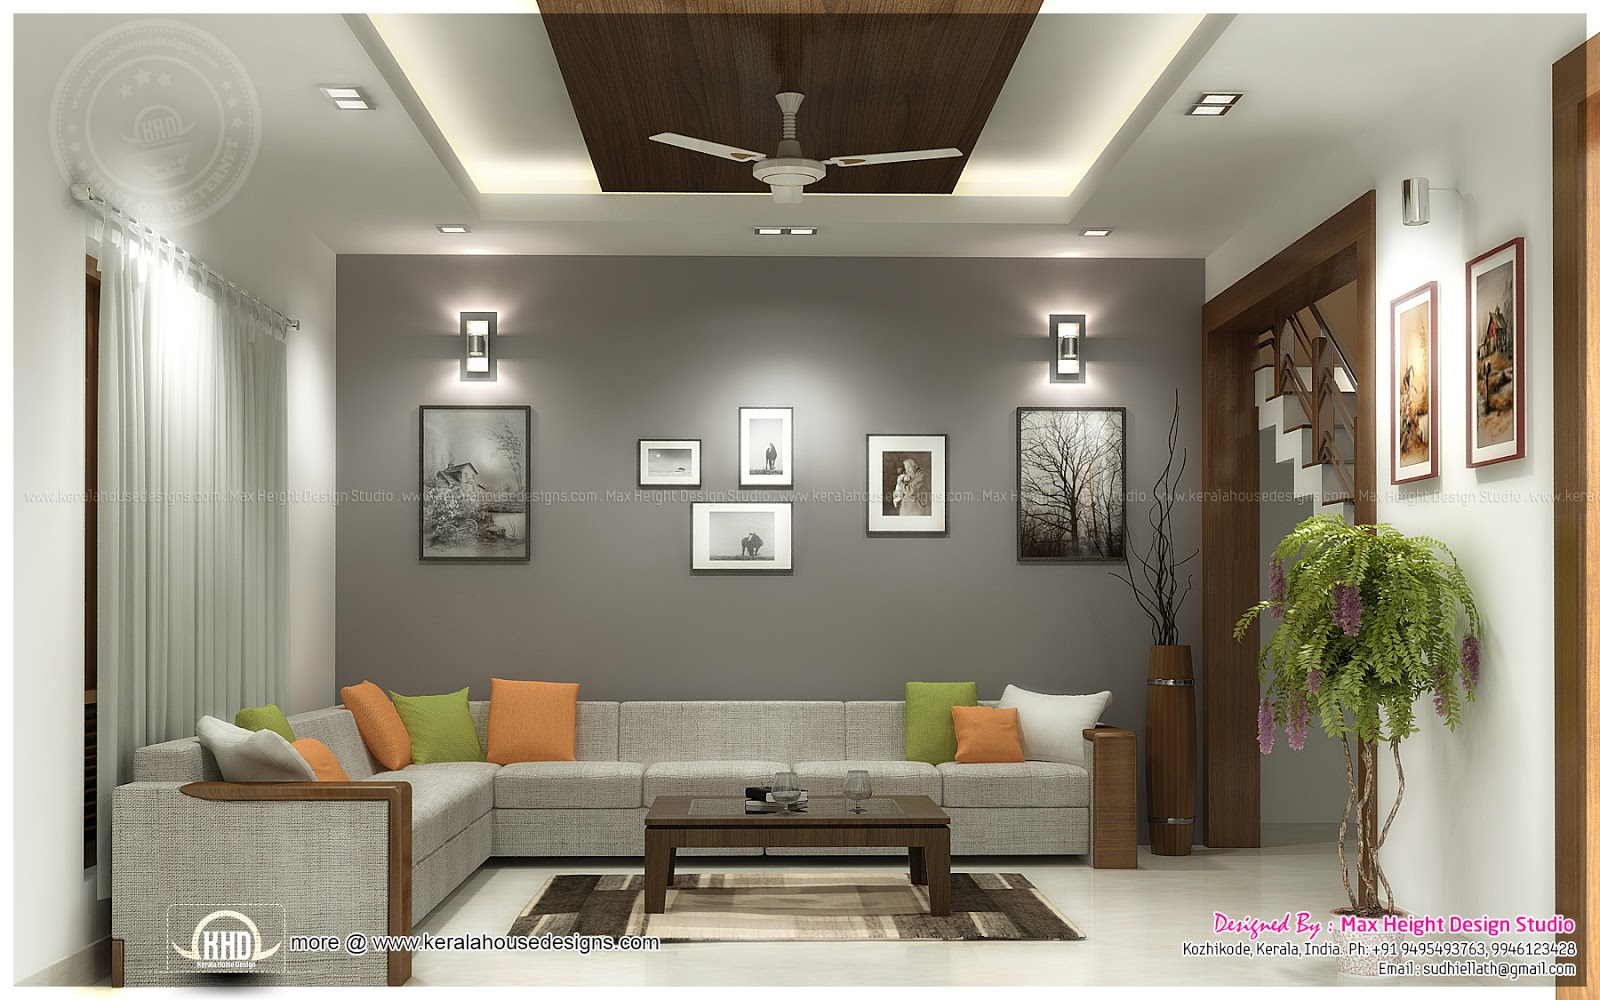 Beautiful interior ideas for home kerala home design and for Home interior design india